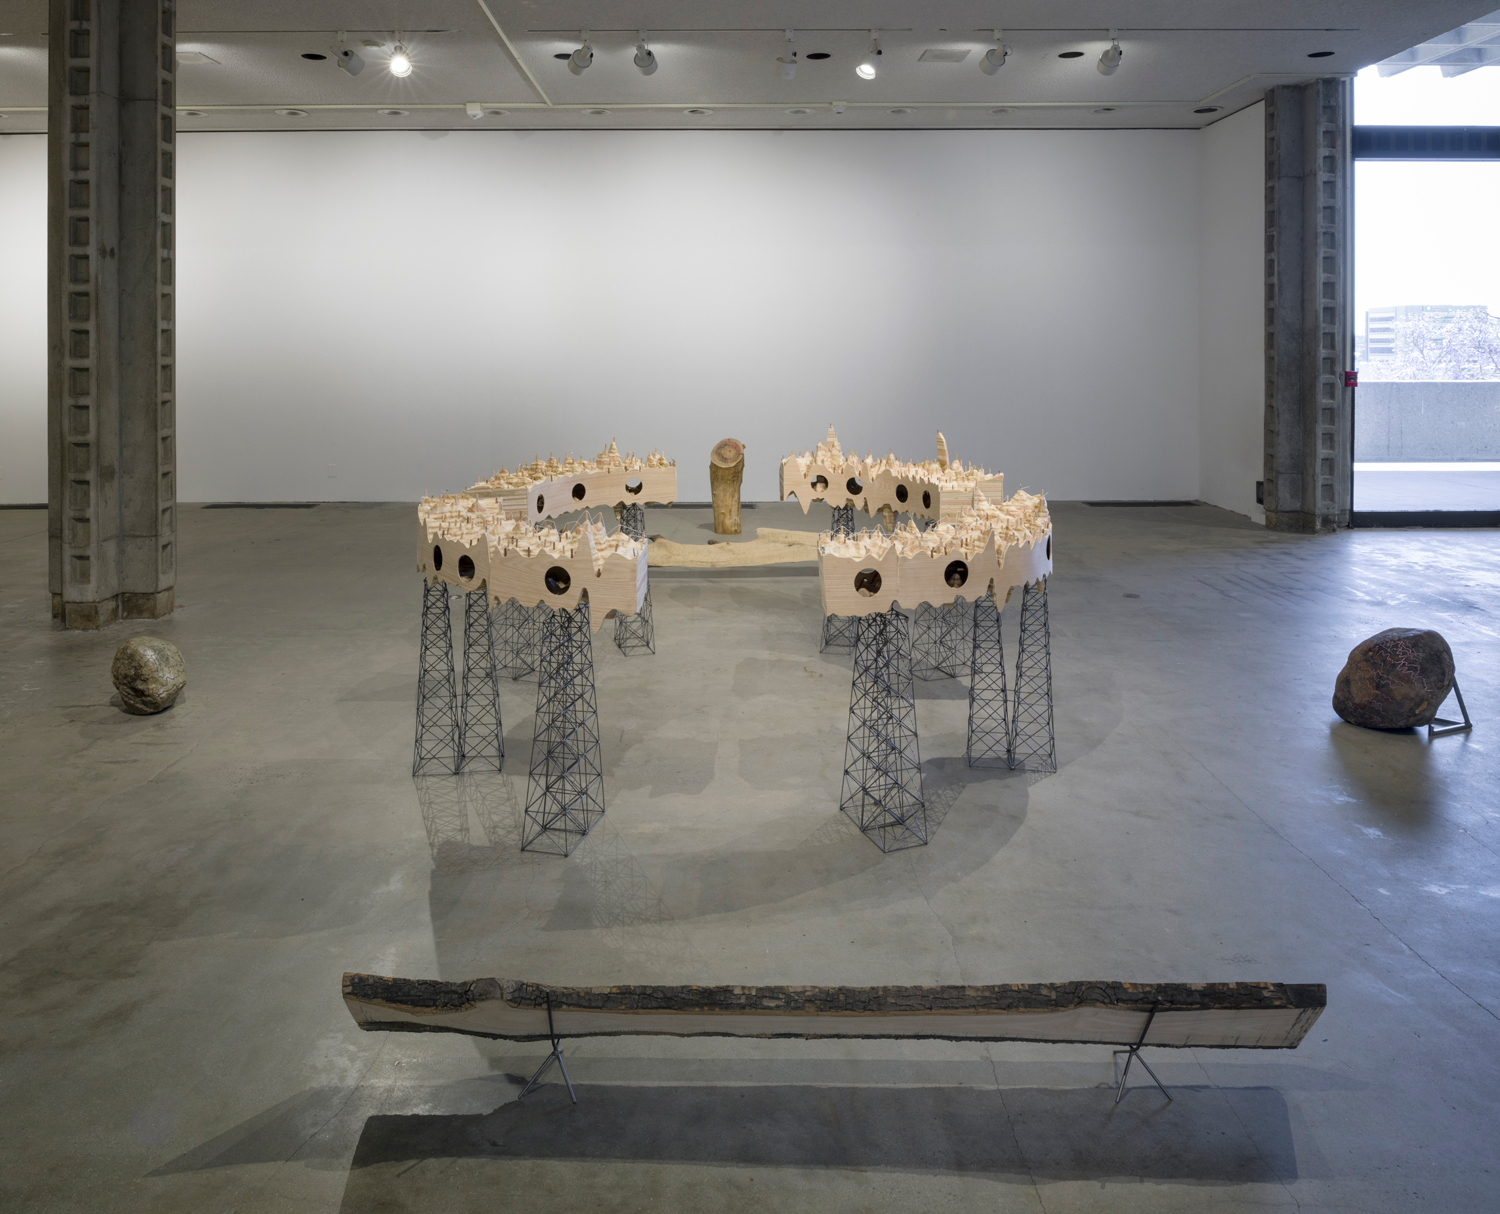 In this artwork installation by the artist Katie Grinnan, there is a large, circular wooden structure with metal stands placed in the center. The wooden structural part has a canyon-like appearance, and has circular cut-outs on the sides. On both the left and right sides of this structure, there is a large rock placed on the floor supported by a metal stand. In front of the wooden structure, there is a large, flat, wooden plank propped up and close to the ground with two small metal stands. Behind the wooden structure is a tree trunk and another large, flat, wooden plank propped up and close to the ground with two small metal stands.